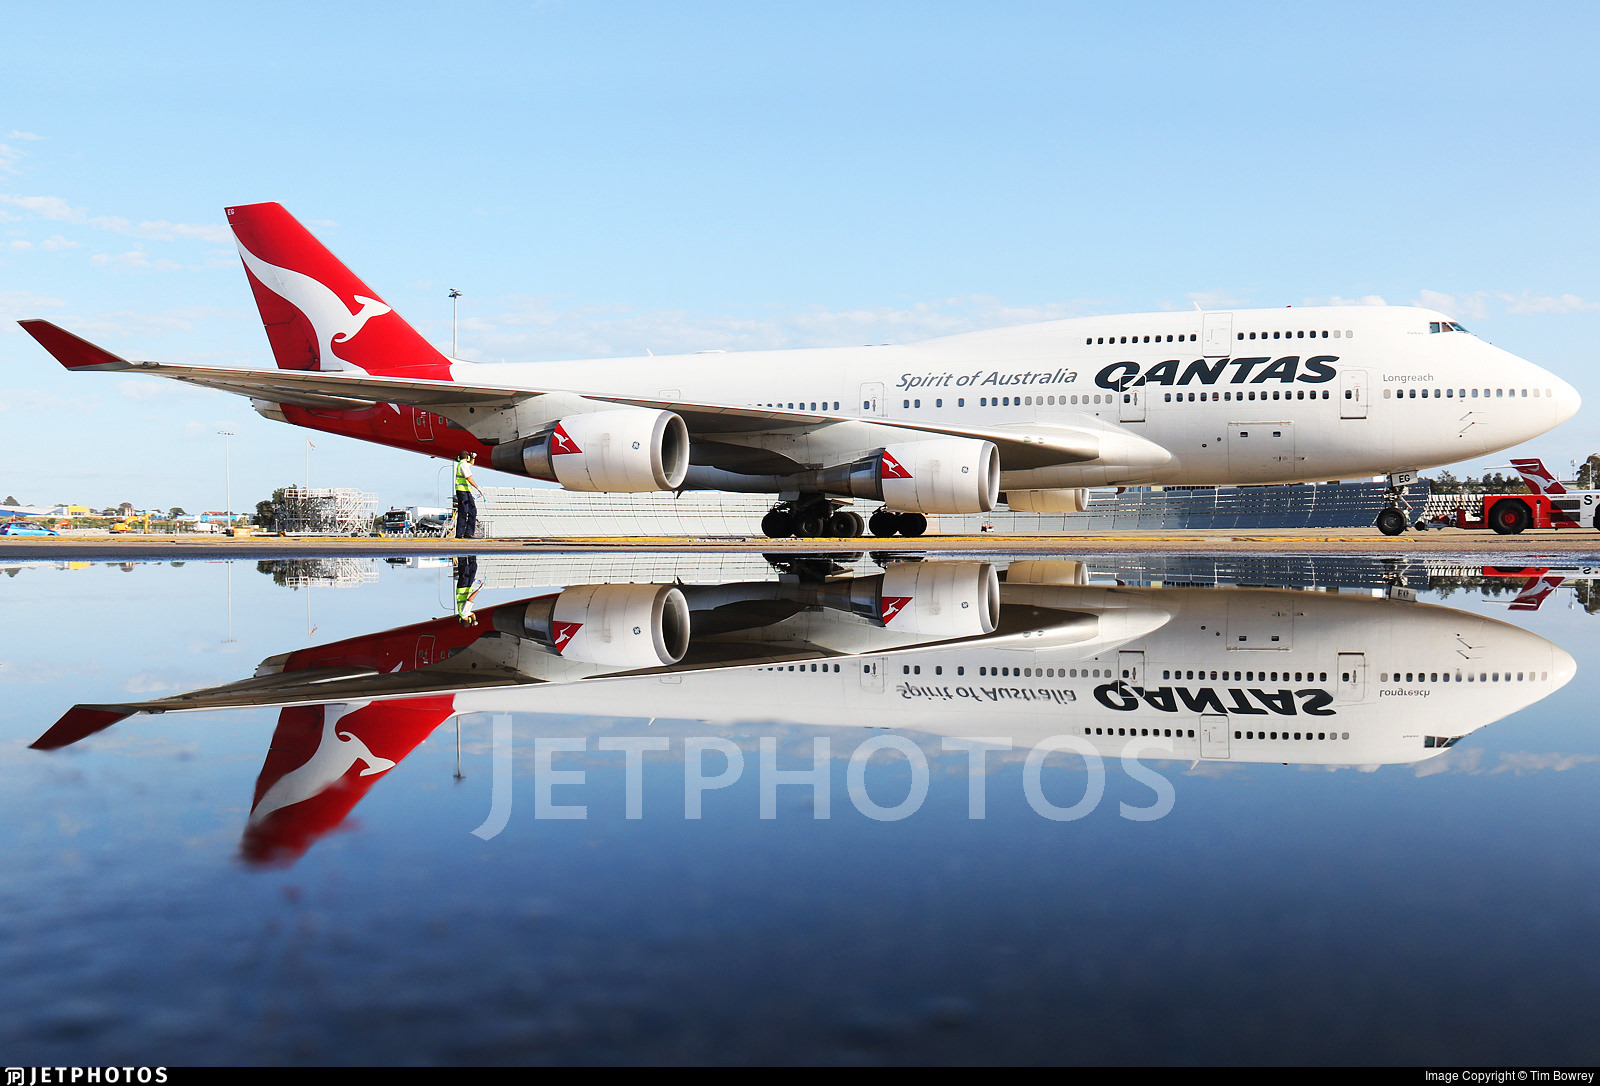 Qantas 747 reflecting in a puddle in Sydney